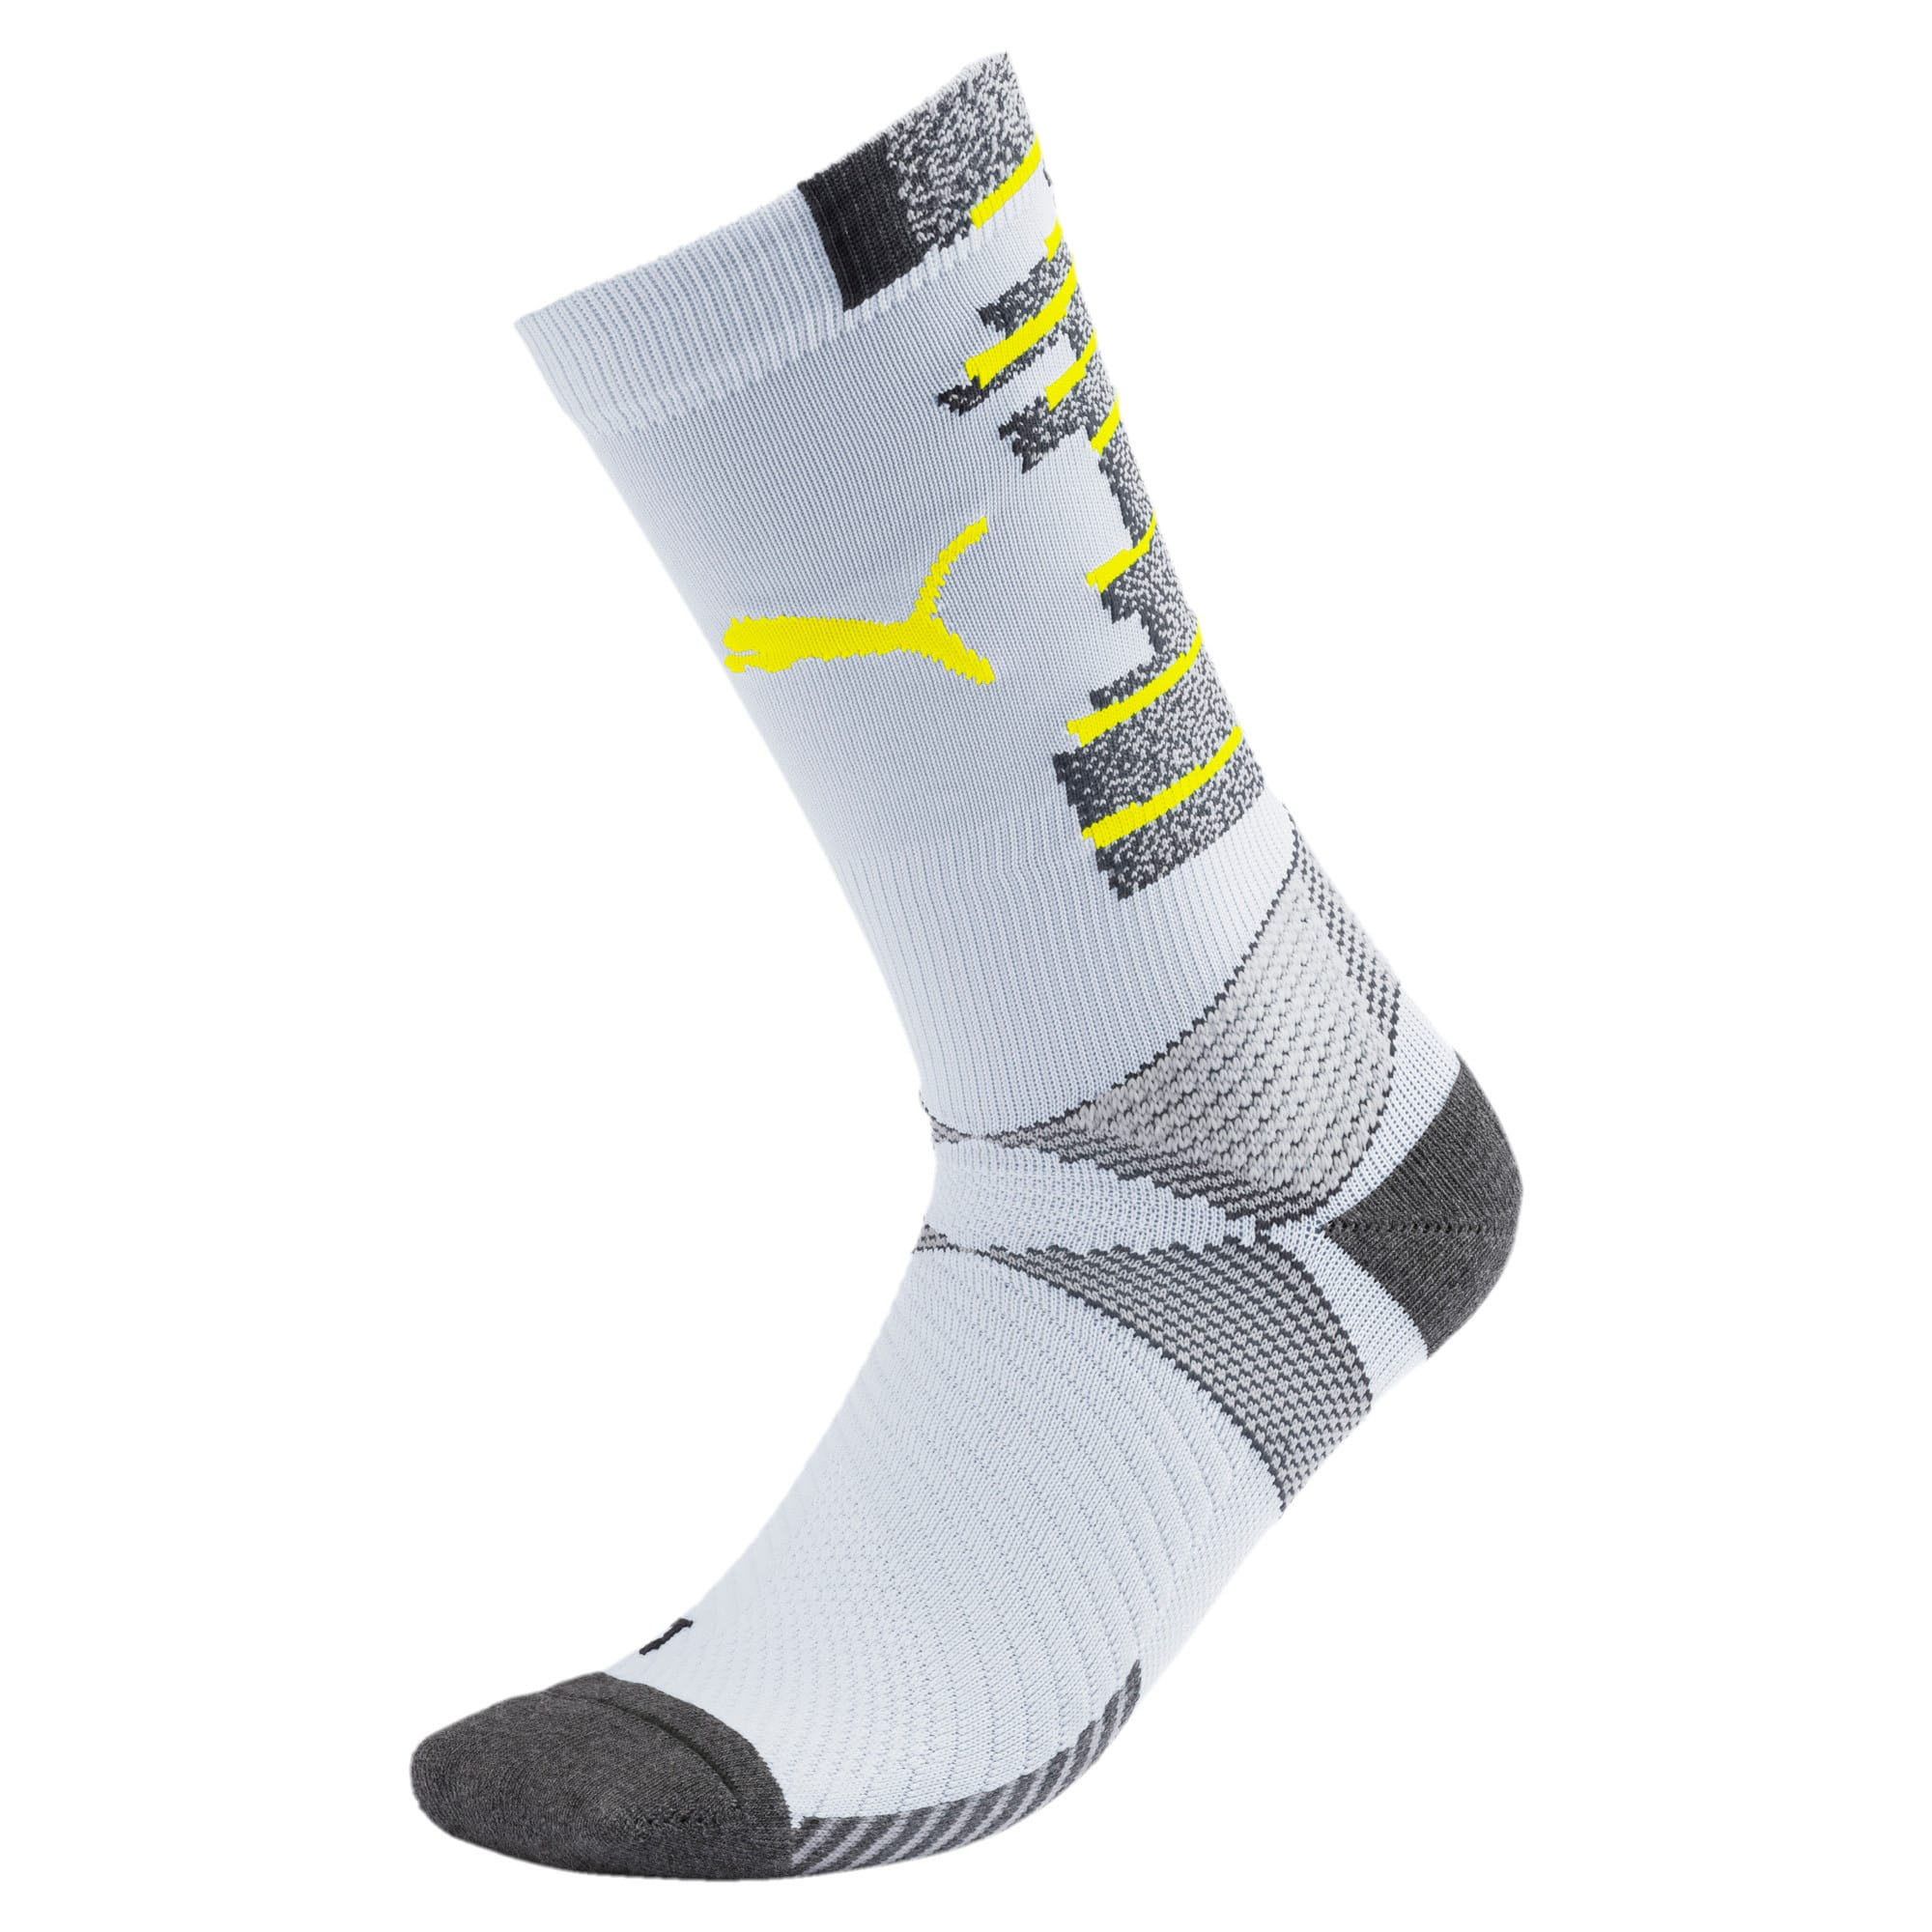 ftblNXT Men's Socks, Grey Dawn-Yellow Alert, large